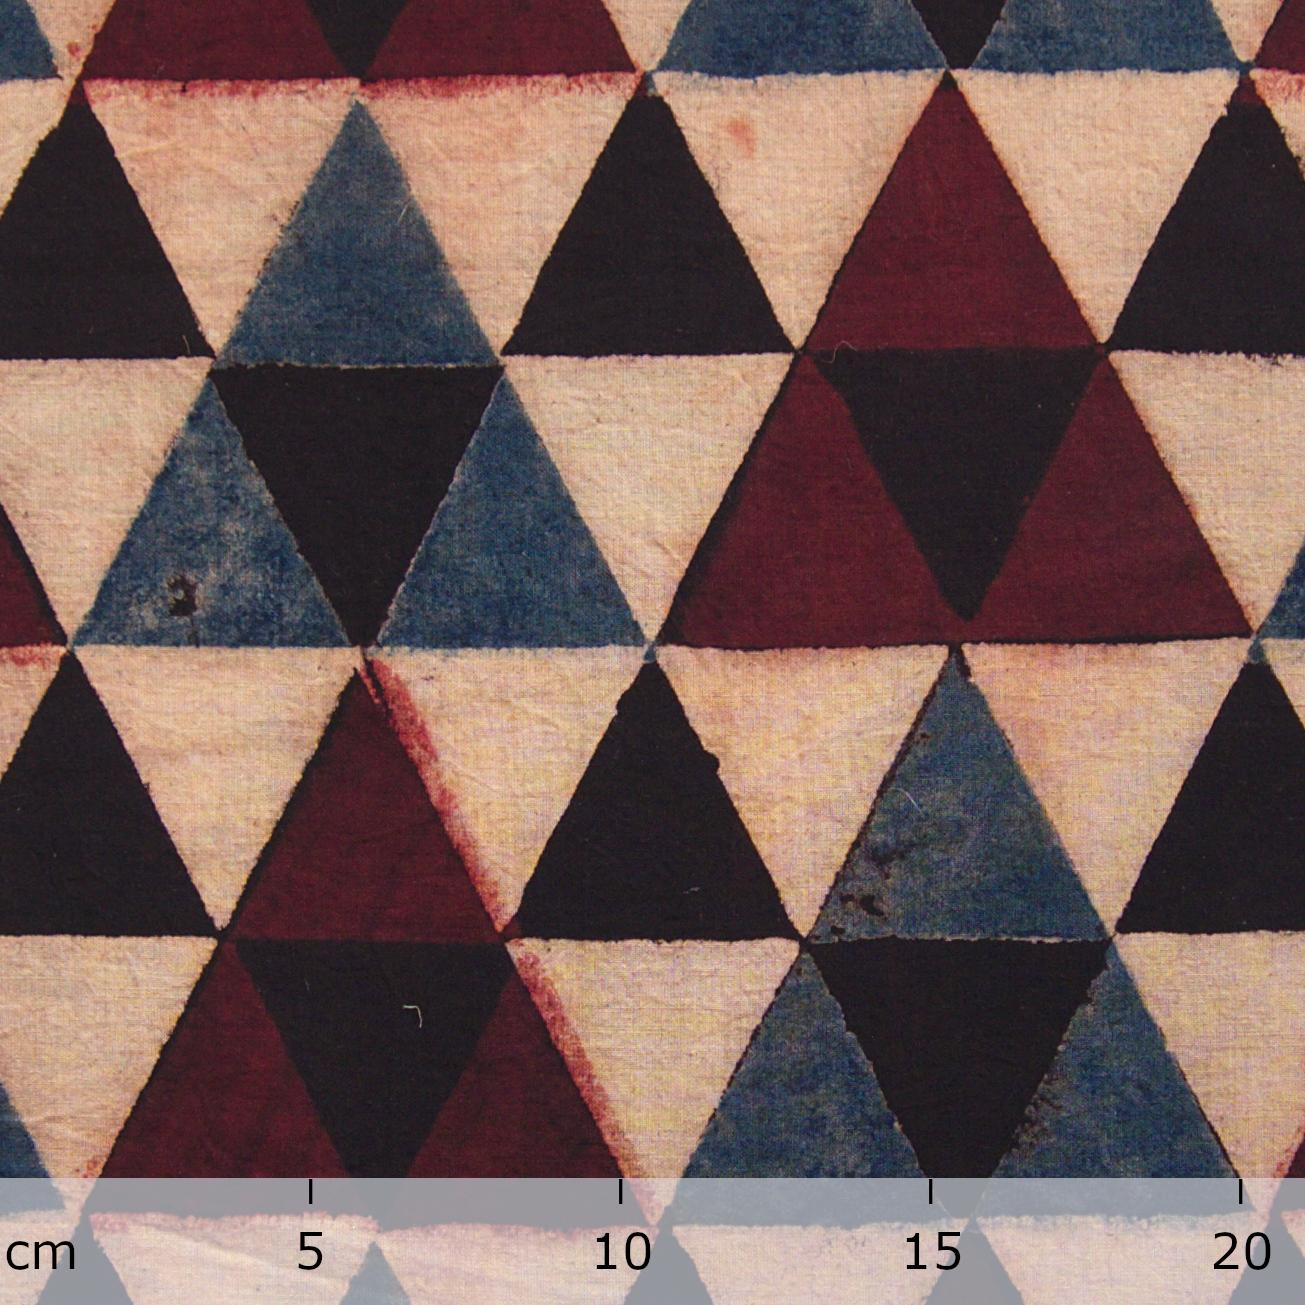 Block Printed Fabric, 100% Cotton, Ajrak Design: Beige Base, Small Black Triangle, Big Red, Blue Triangle. Ruler